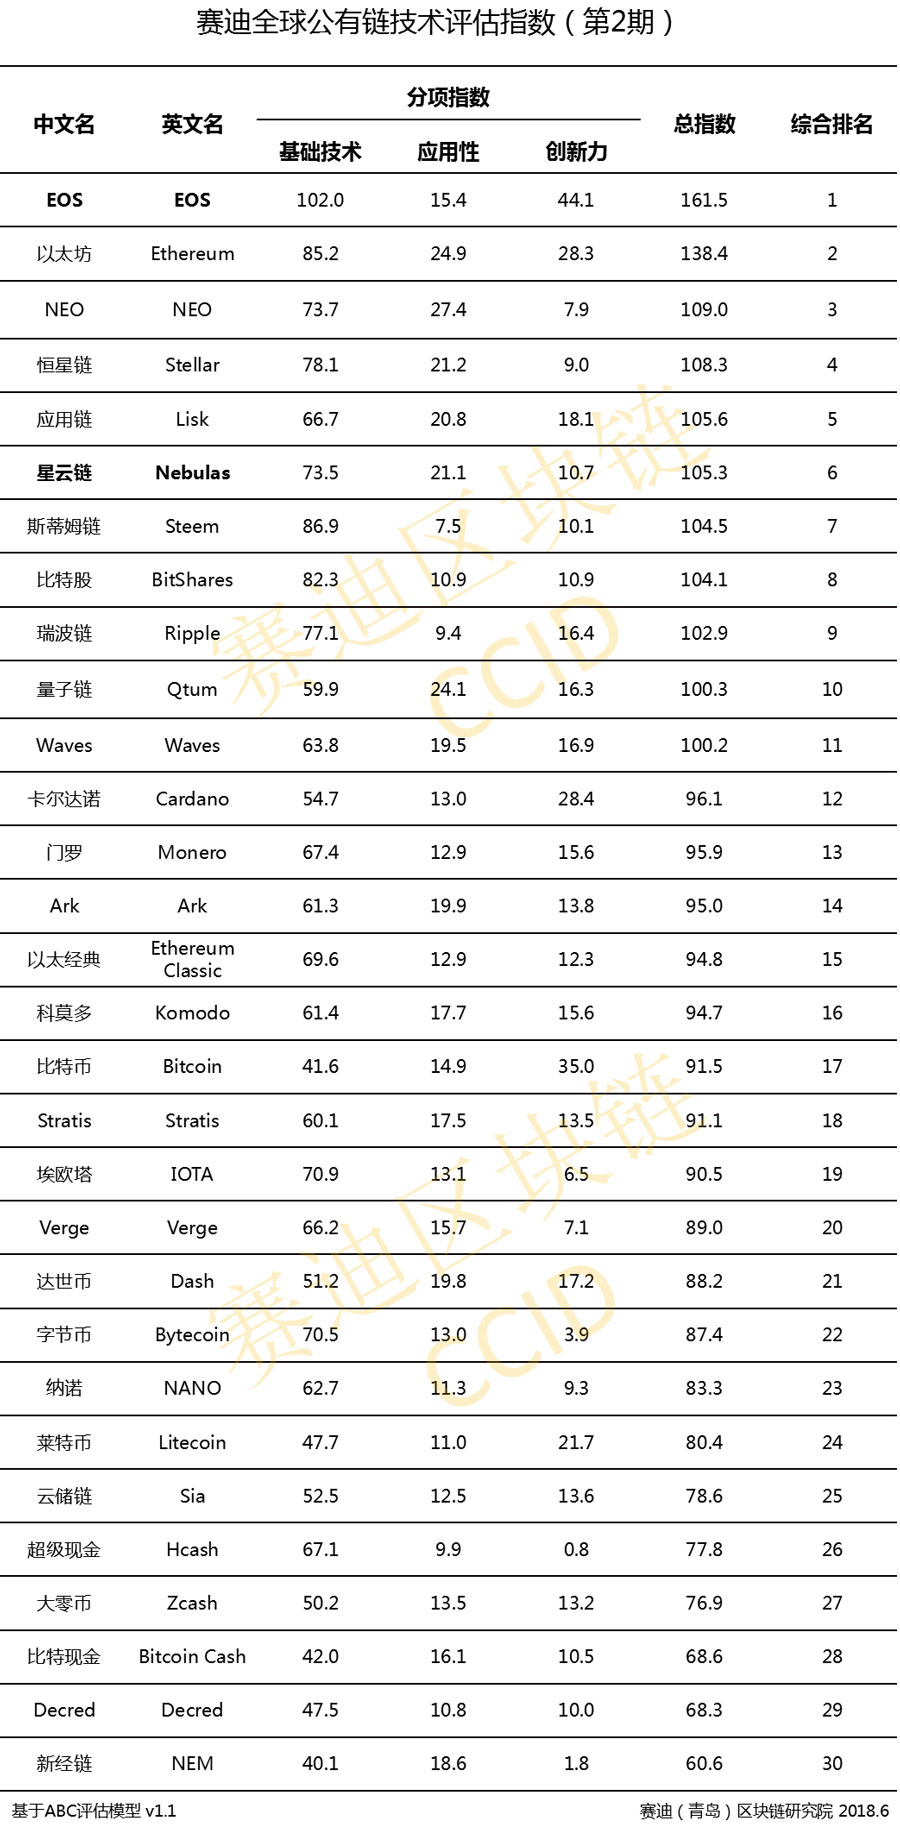 China Blockchain Rating